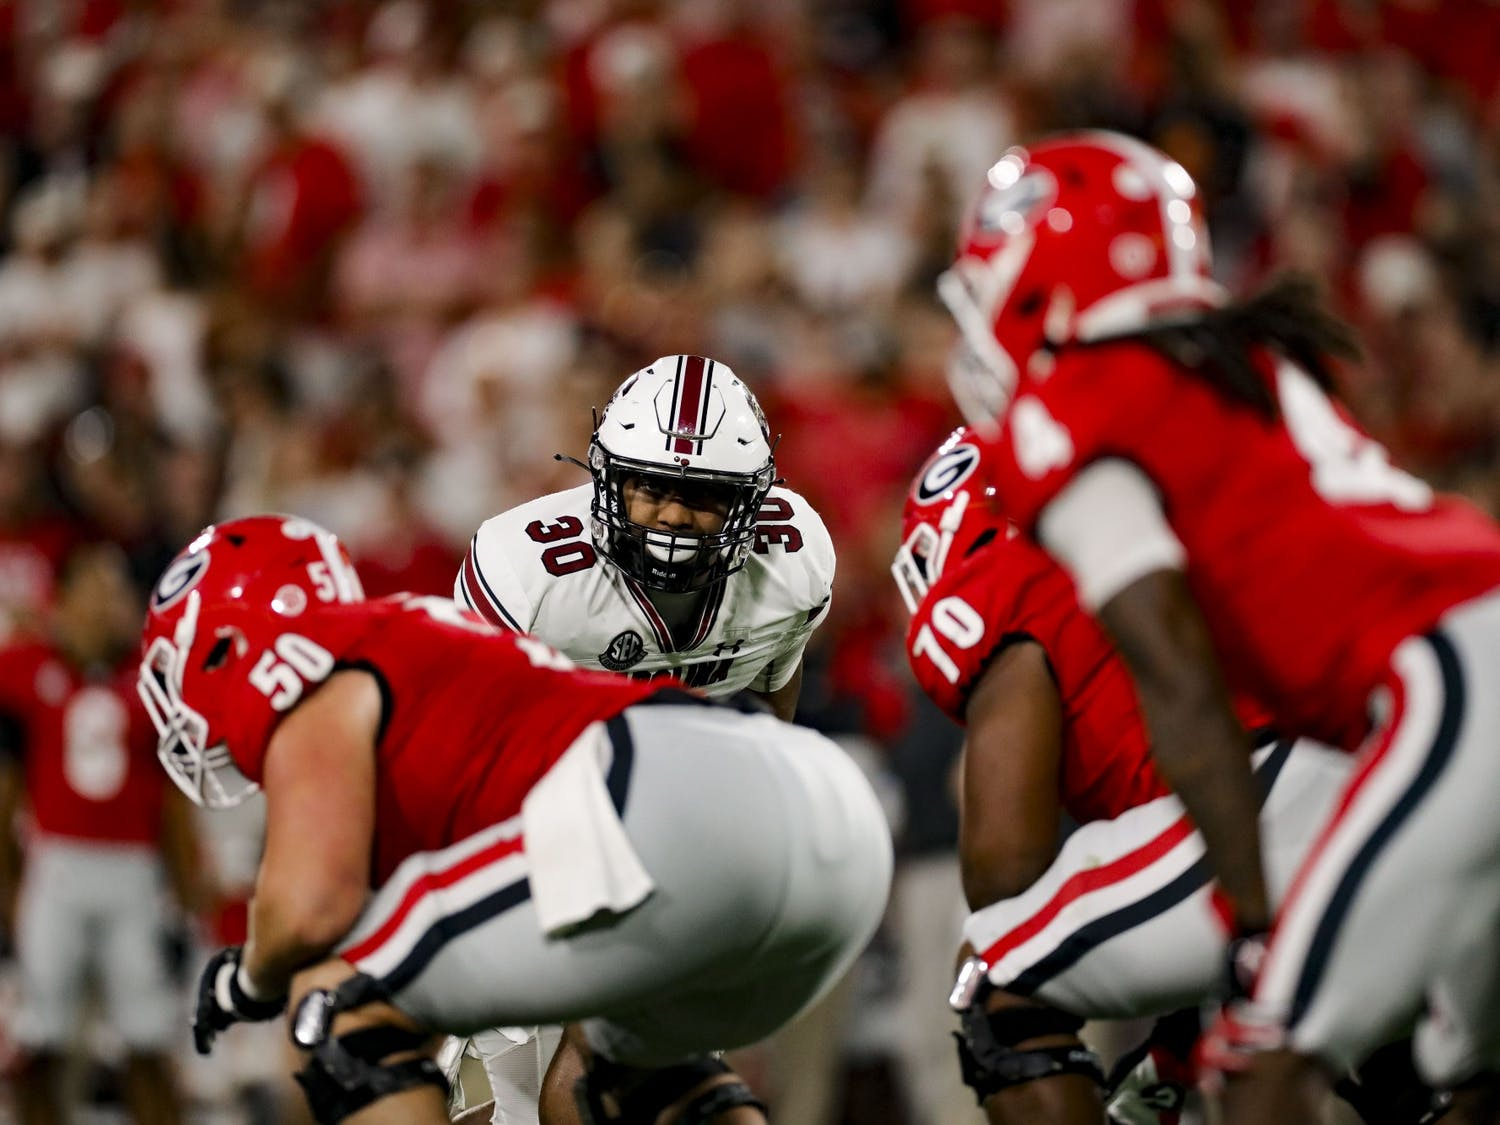 Fifth-year linebacker Damani Staley observes Georgia's offense before a play in South Carolina's game against Georgia on Sept. 18, 2021.